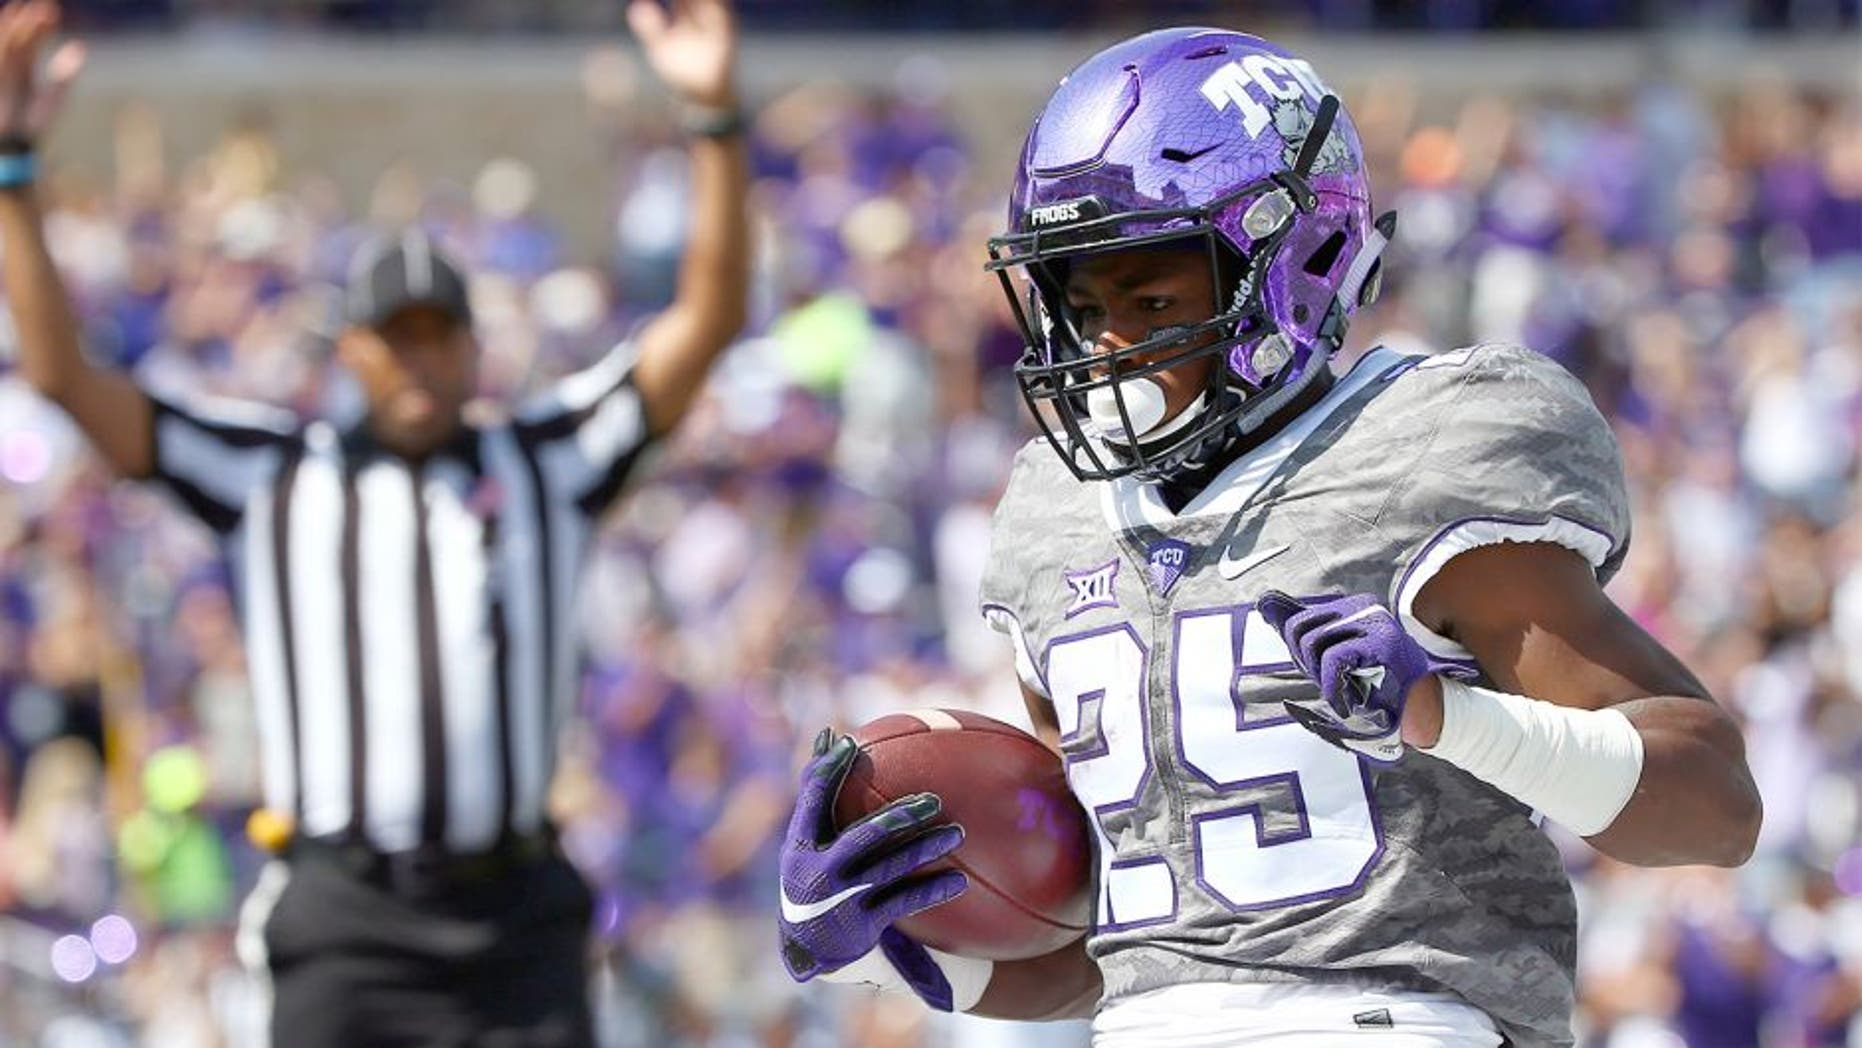 FORT WORTH, TX - OCTOBER 03: KaVontae Turpin #25 of the TCU Horned Frogs scores a touchdown against the Texas Longhorns in the first half at Amon G. Carter Stadium on October 3, 2015 in Fort Worth, Texas. (Photo by Tom Pennington/Getty Images)